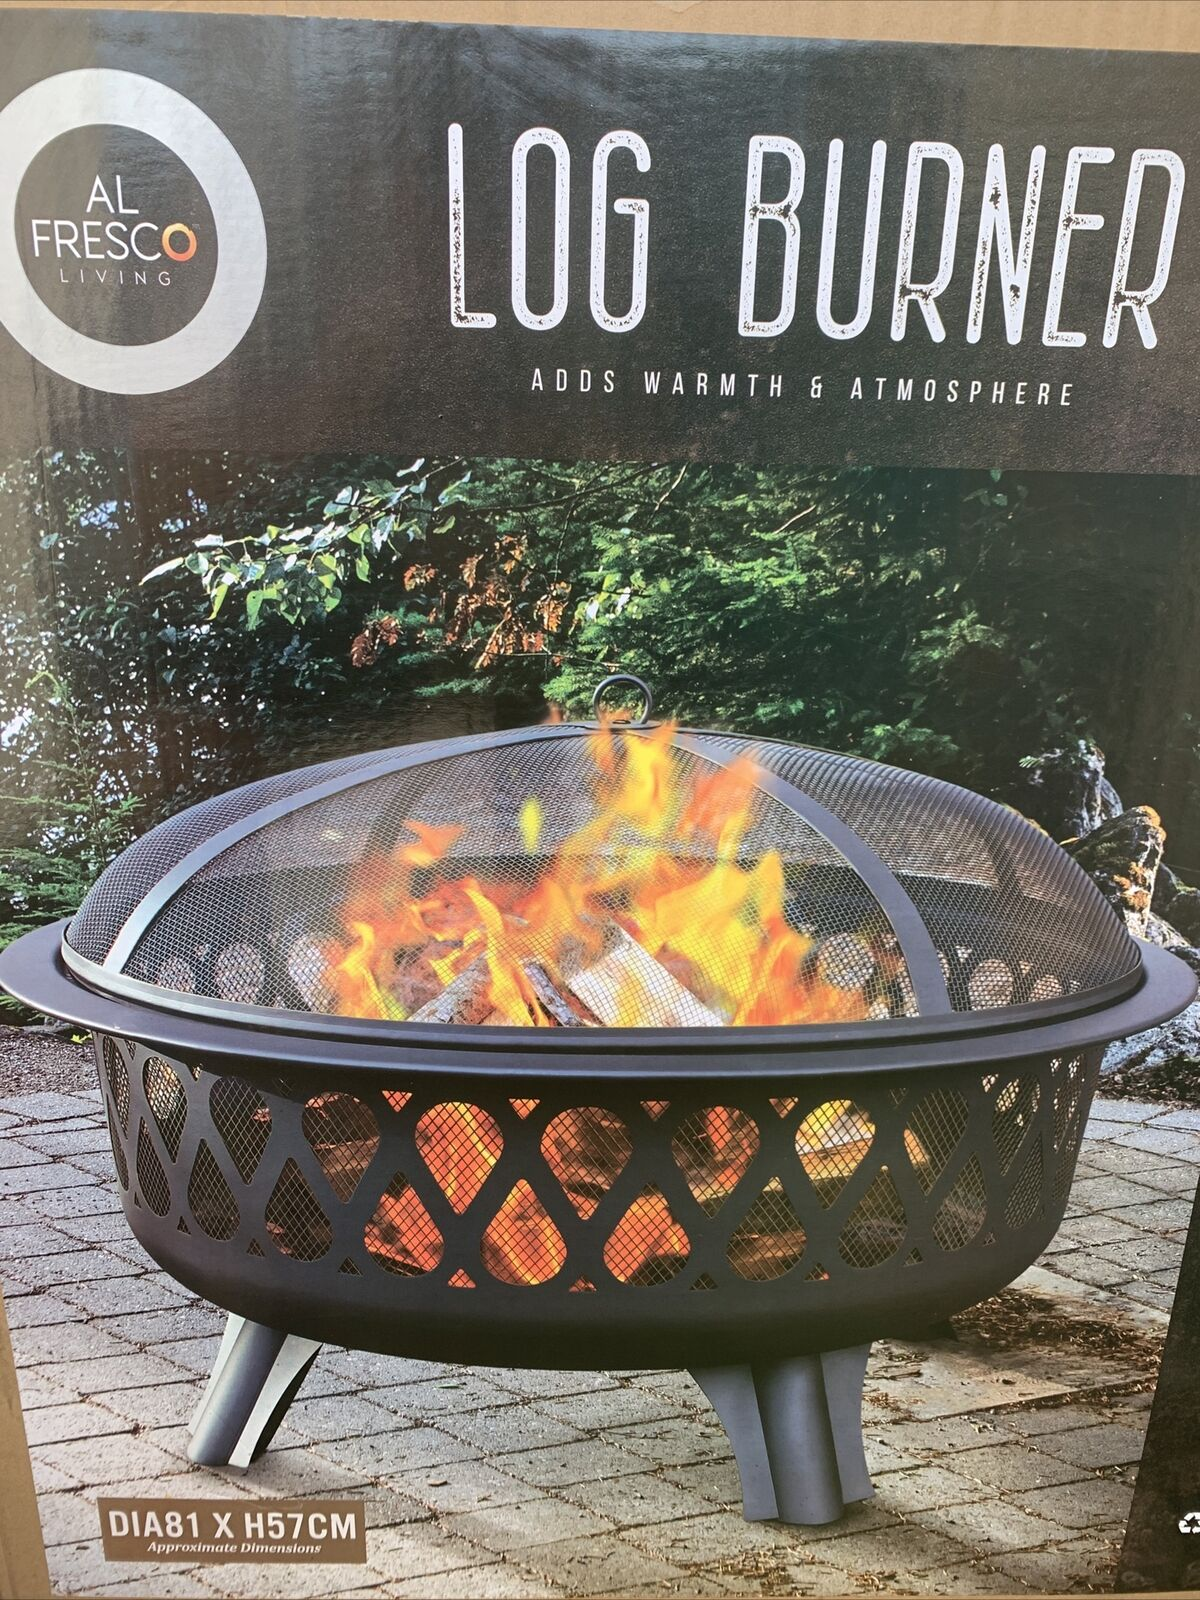 Large Alfresco Log Wood Burner Fire Pit Garden outdoor party BBQ Accessories New